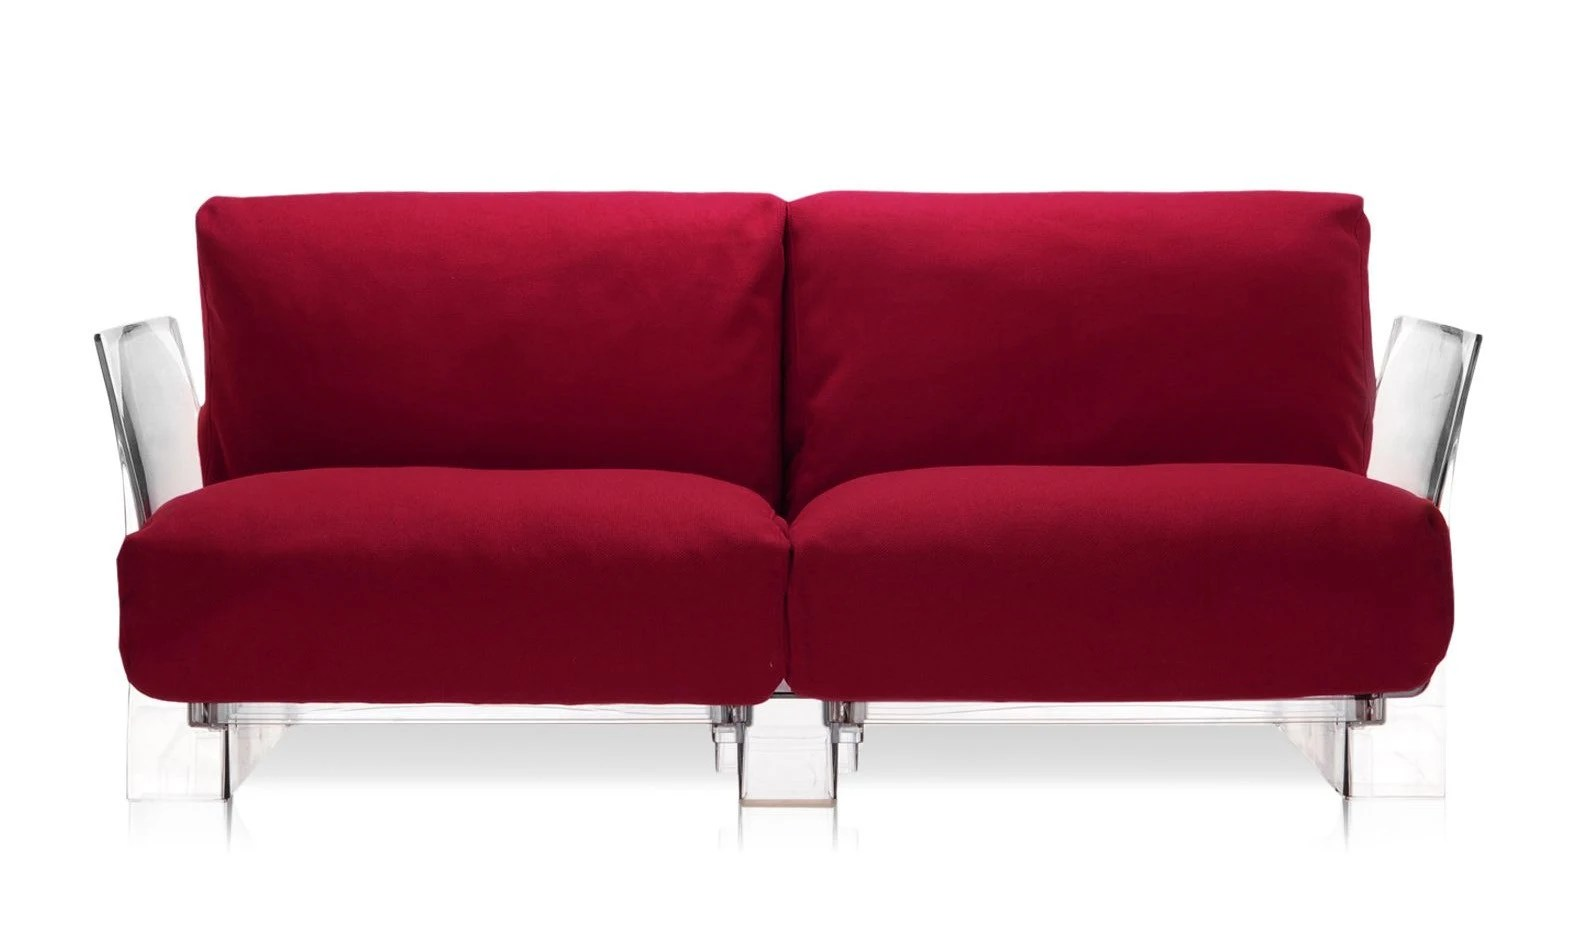 Sofa Pop Kartell Pop Cotton And Trevira 2 Seater Sofa